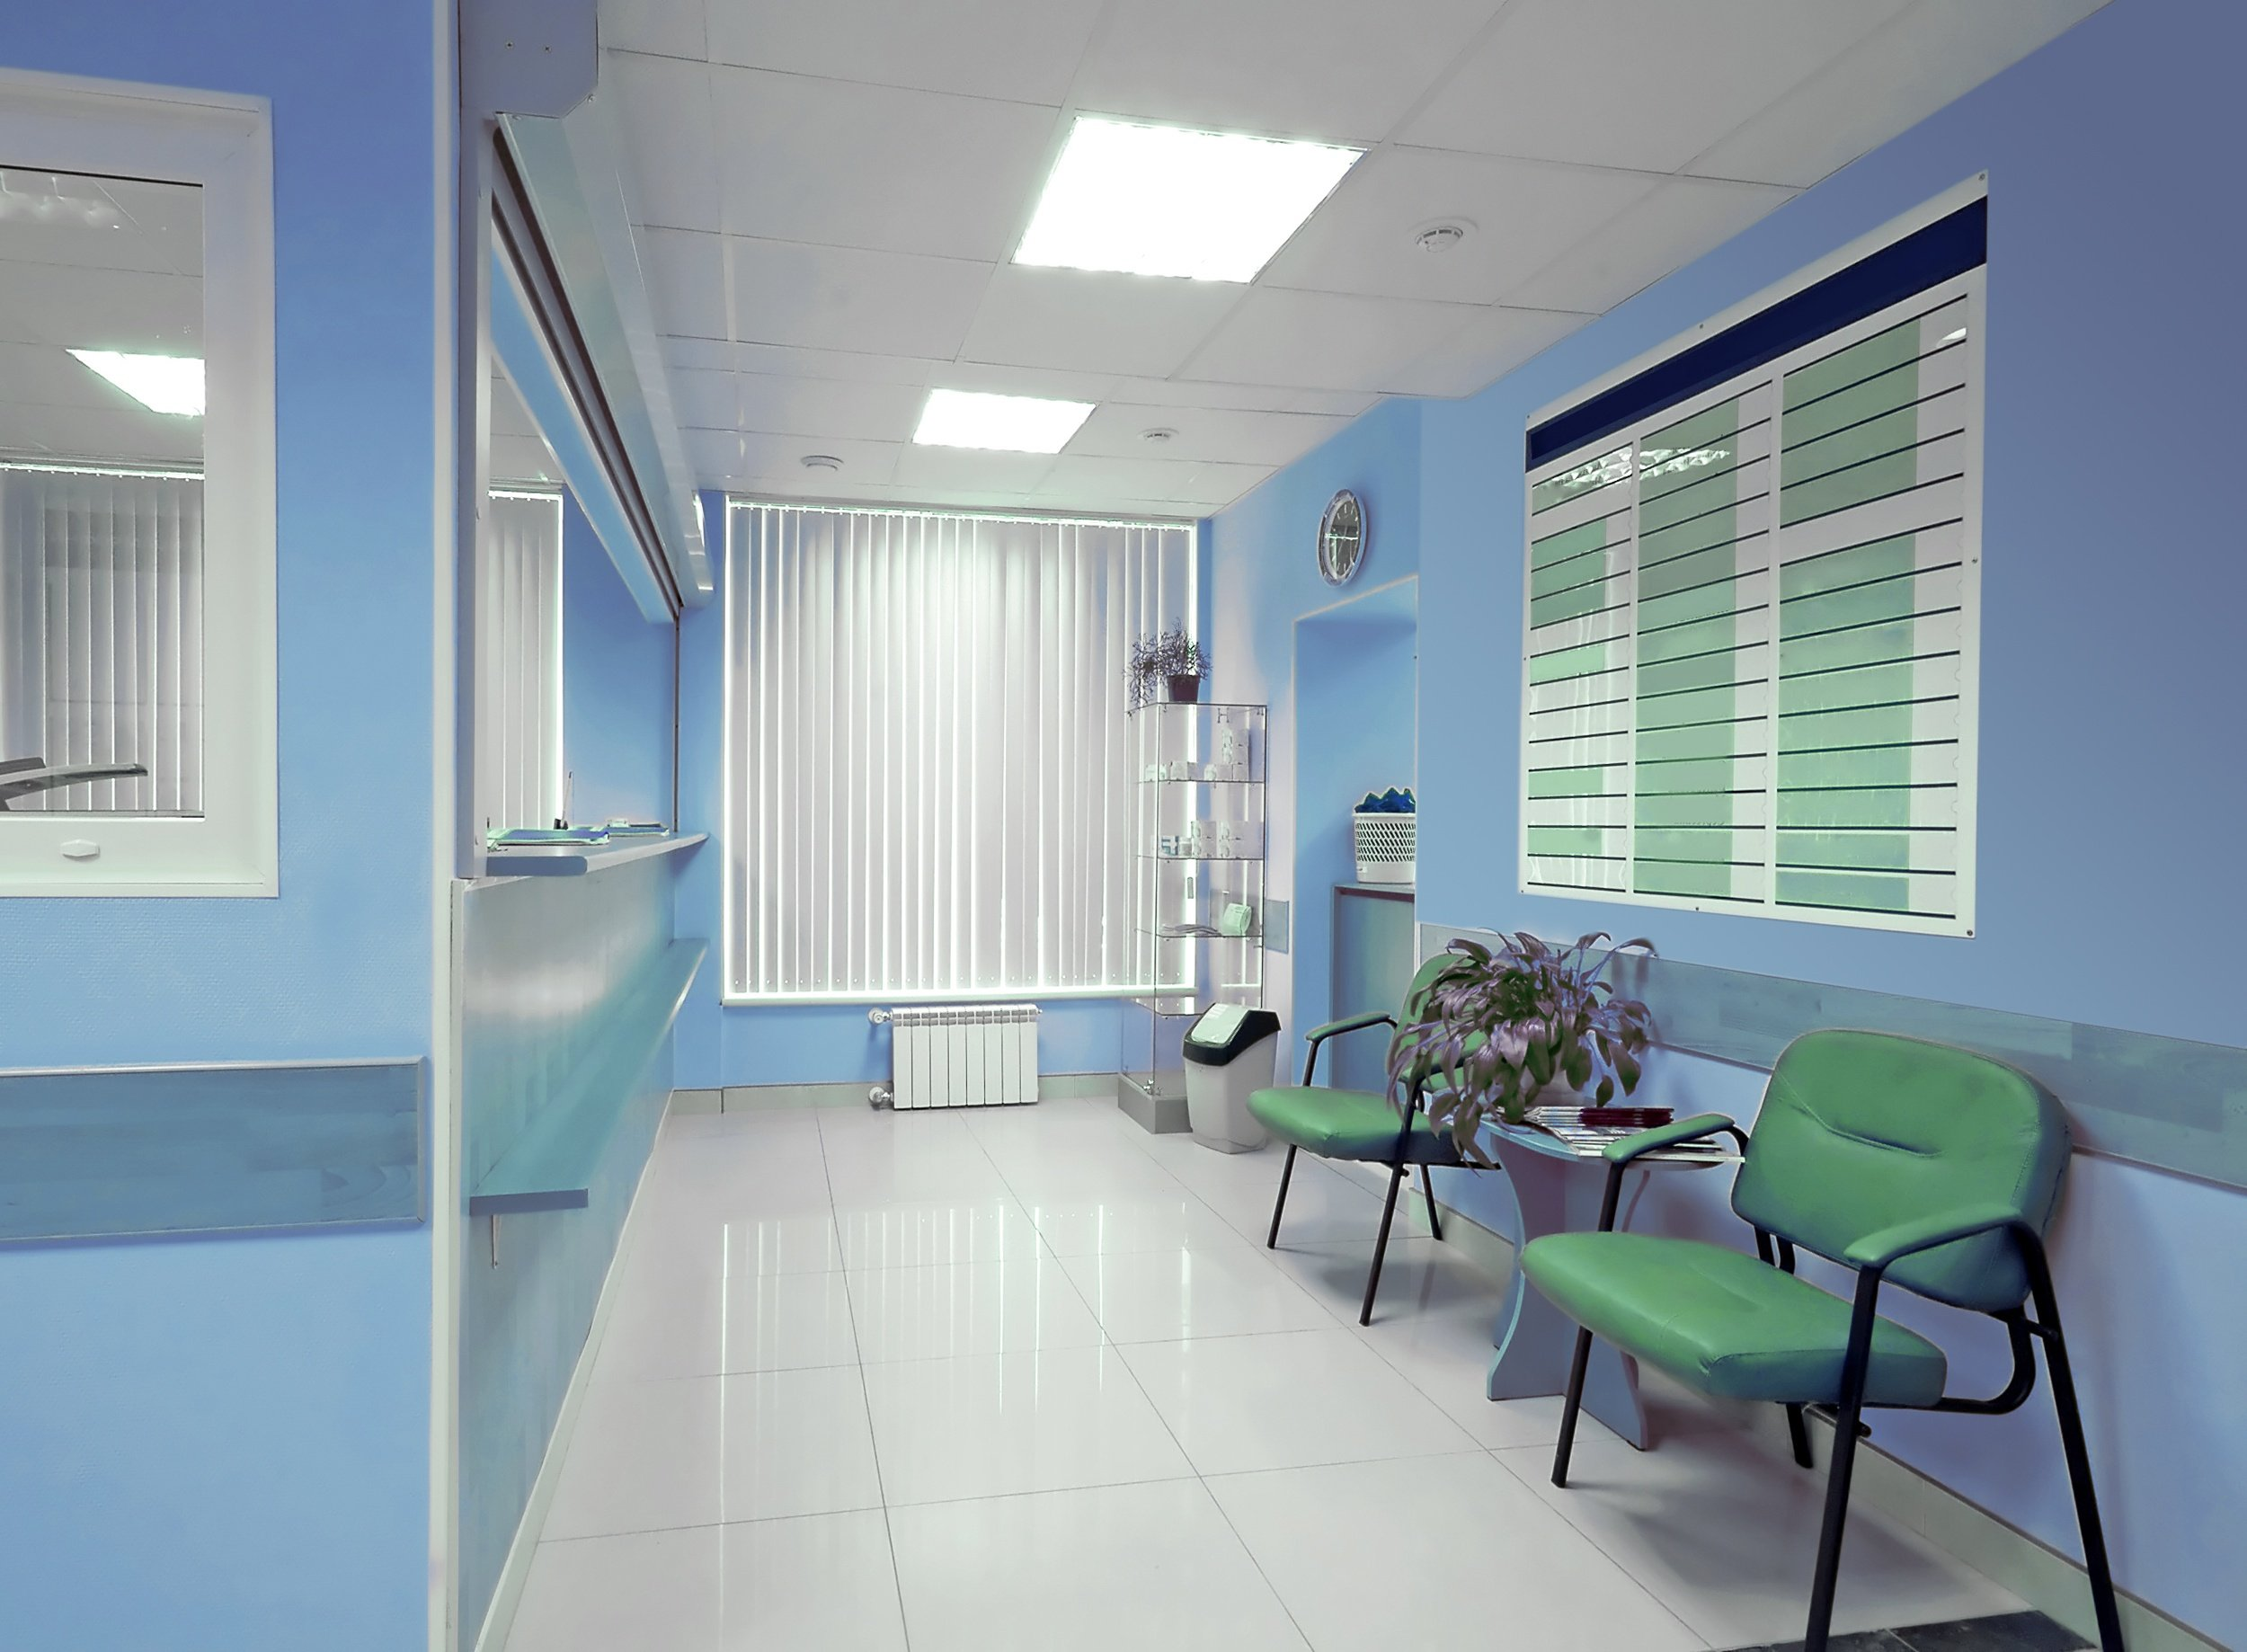 hospital security procedures, including monitoring facilities